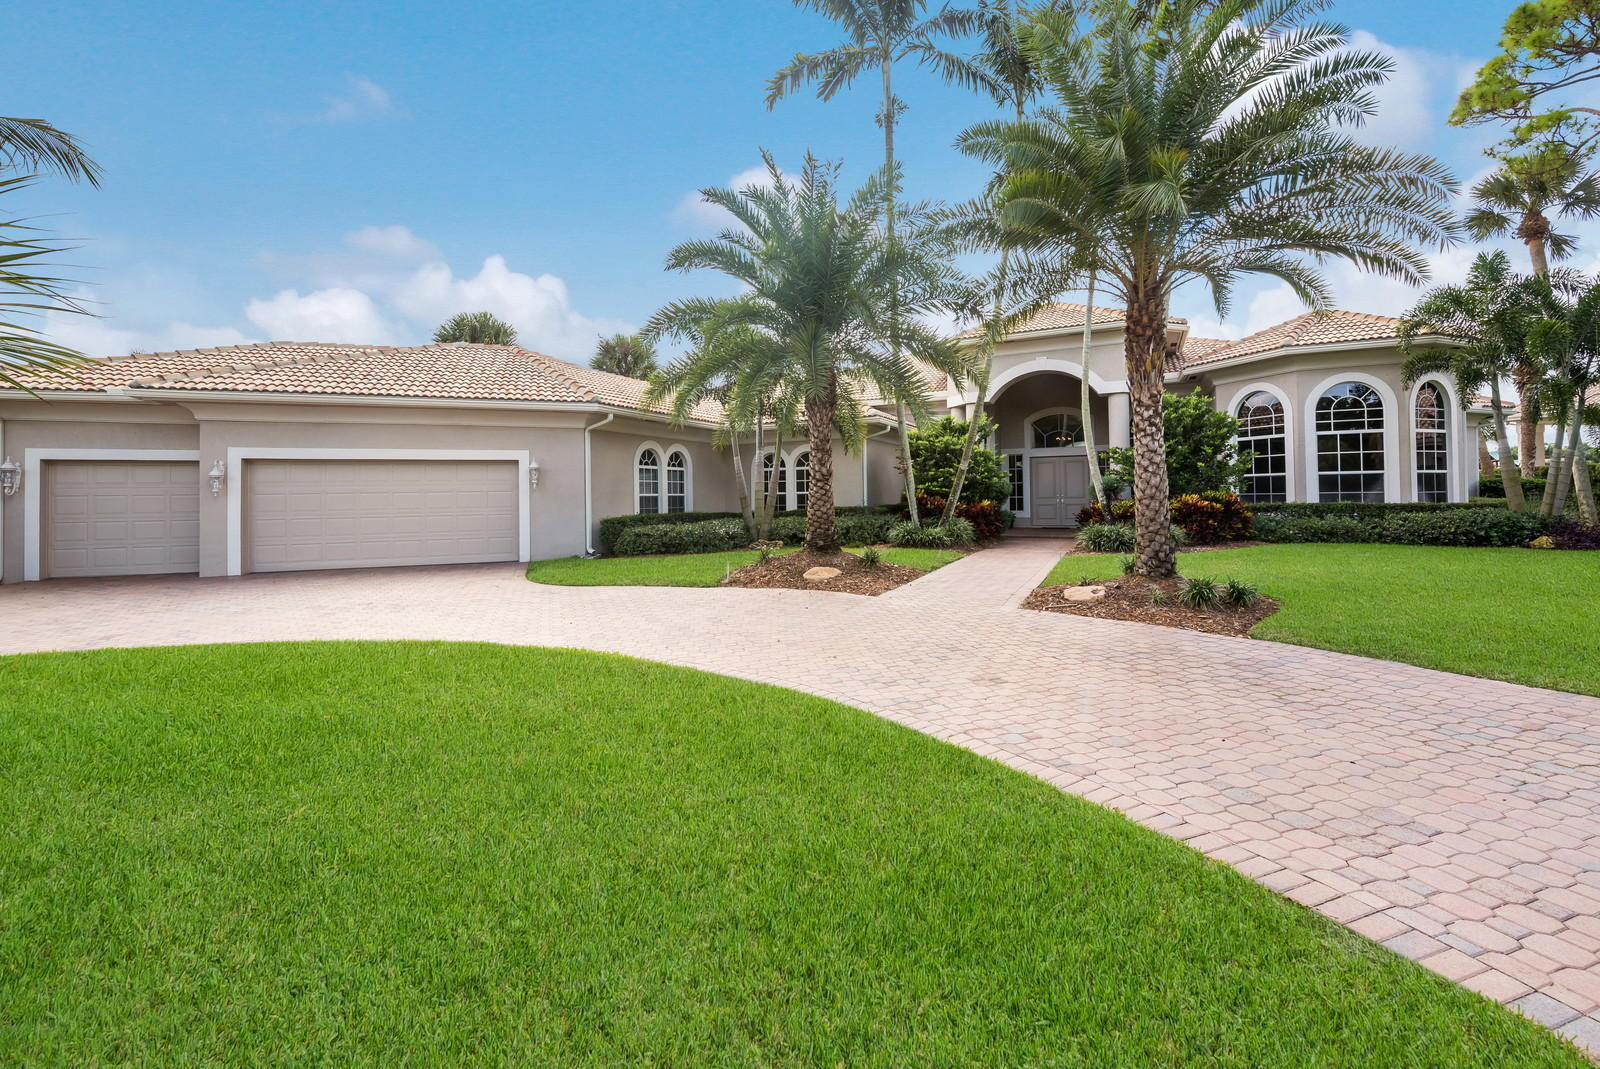 1692 Cypress Terrace Court West Palm Beach Fl Mls Rx 10465487 - Contemporary-west-palm-beach-property